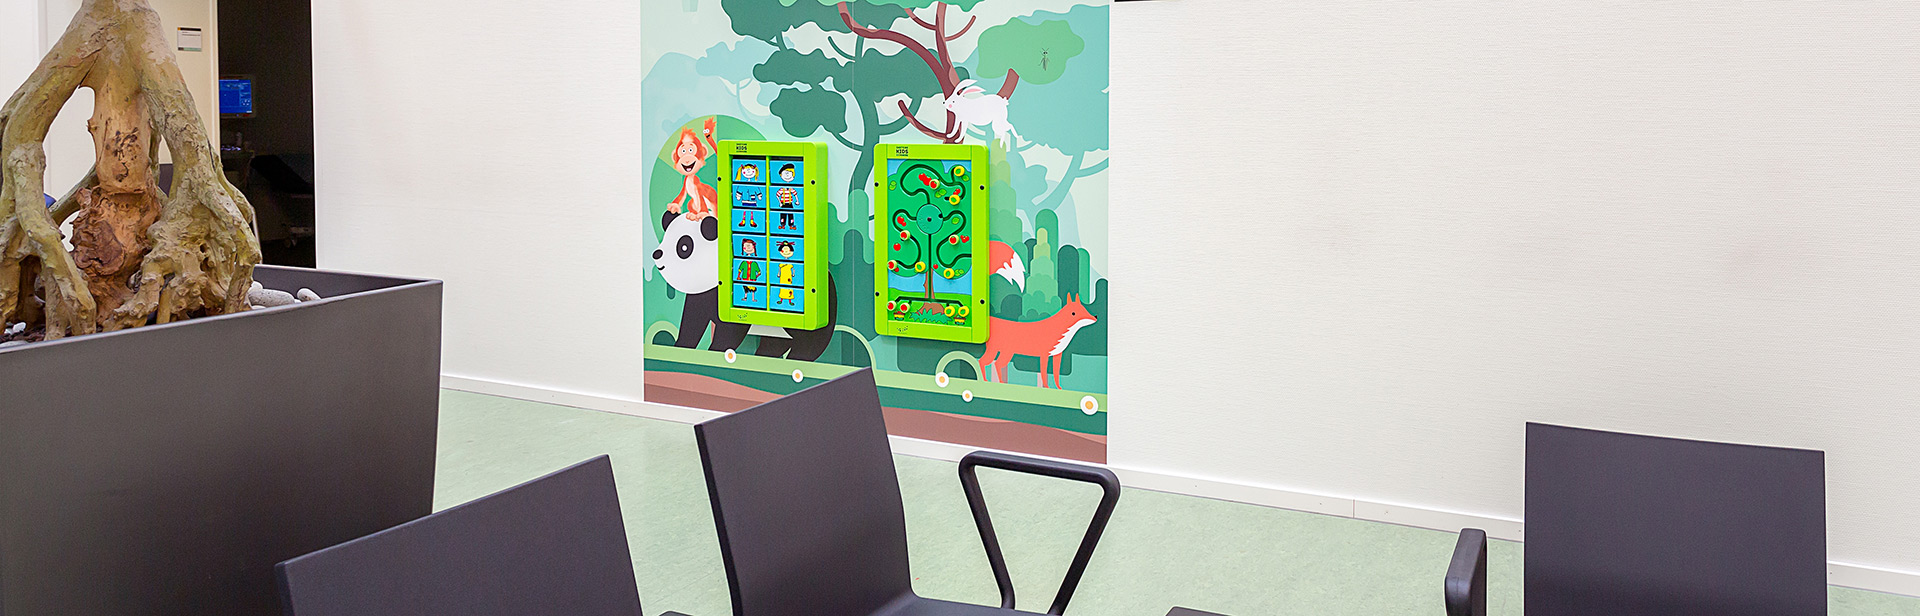 this image shows a kids corner with wall games in a hospital